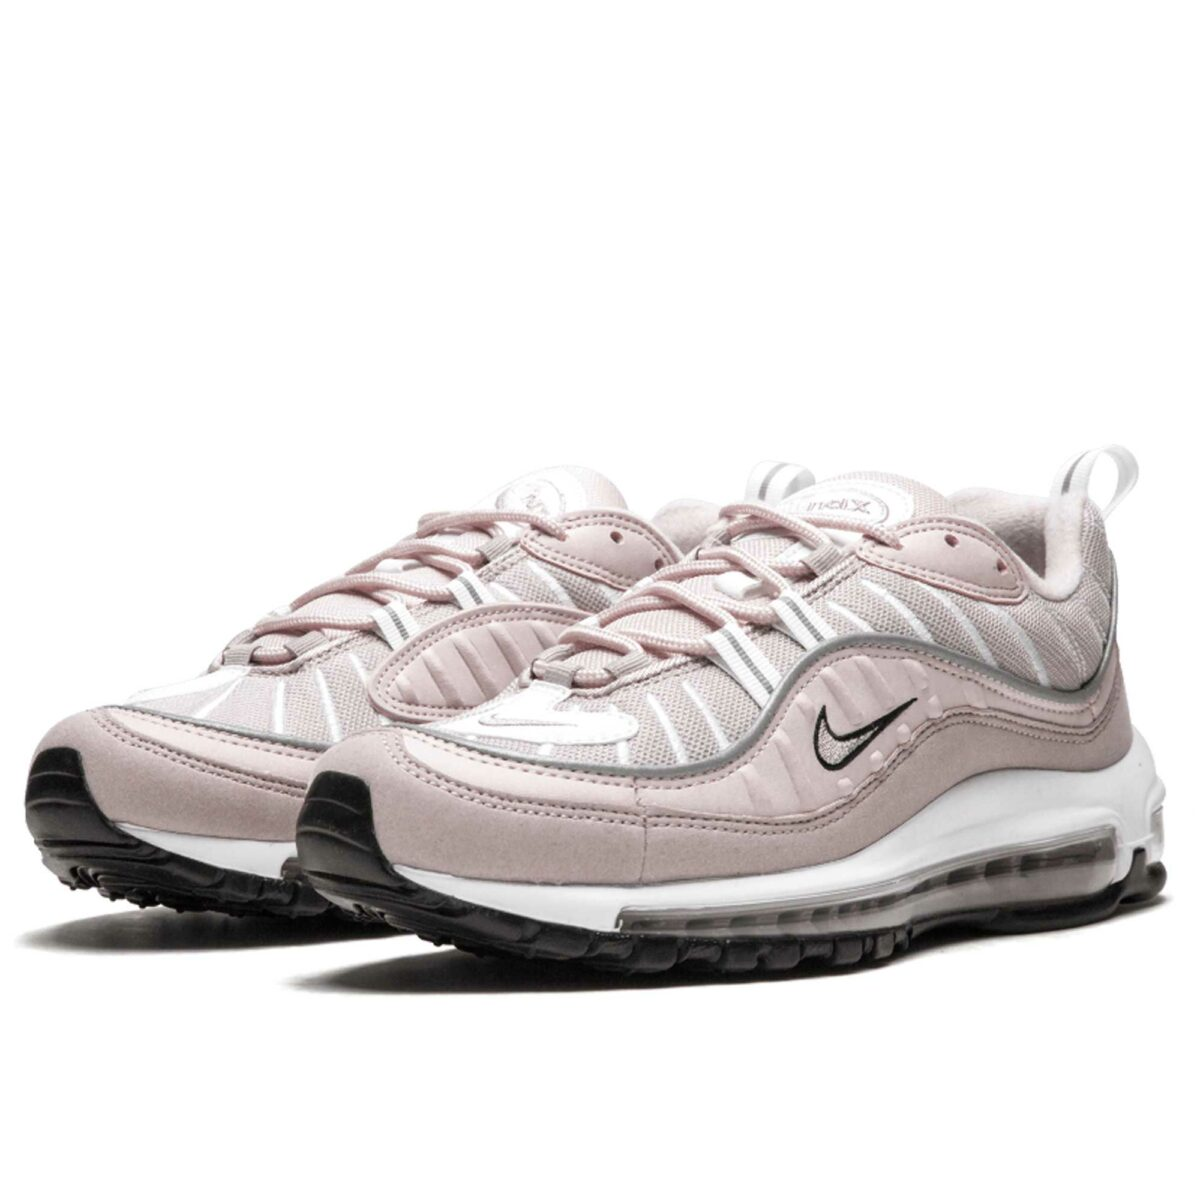 nike air max 98 light rose AH6799_600 купить